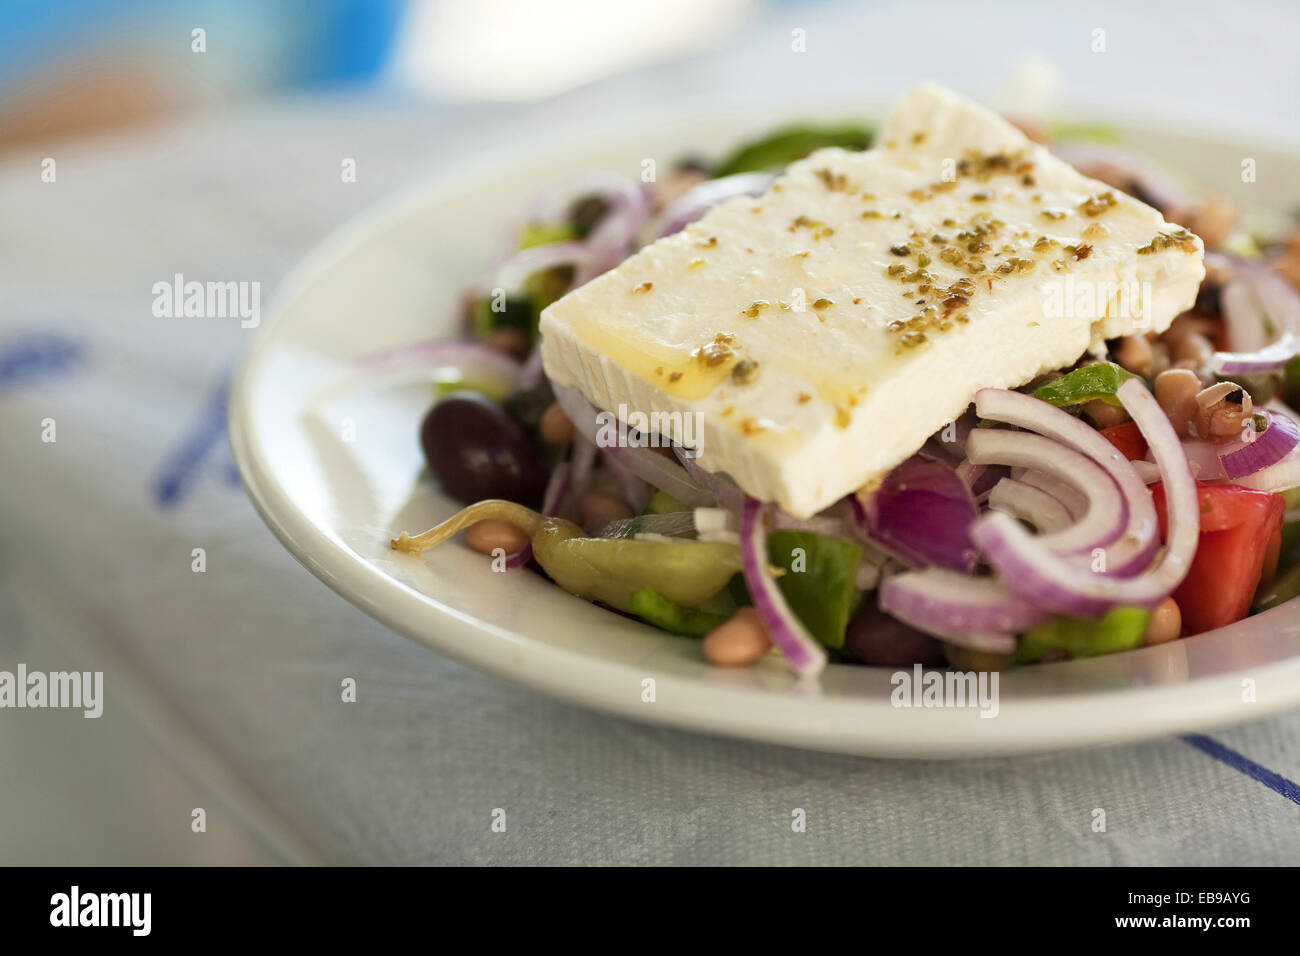 Greek Salad wiating to consume on the table, Koufonissi, Cyclades Islands, Greek Islands, Greece, Europe. - Stock Image